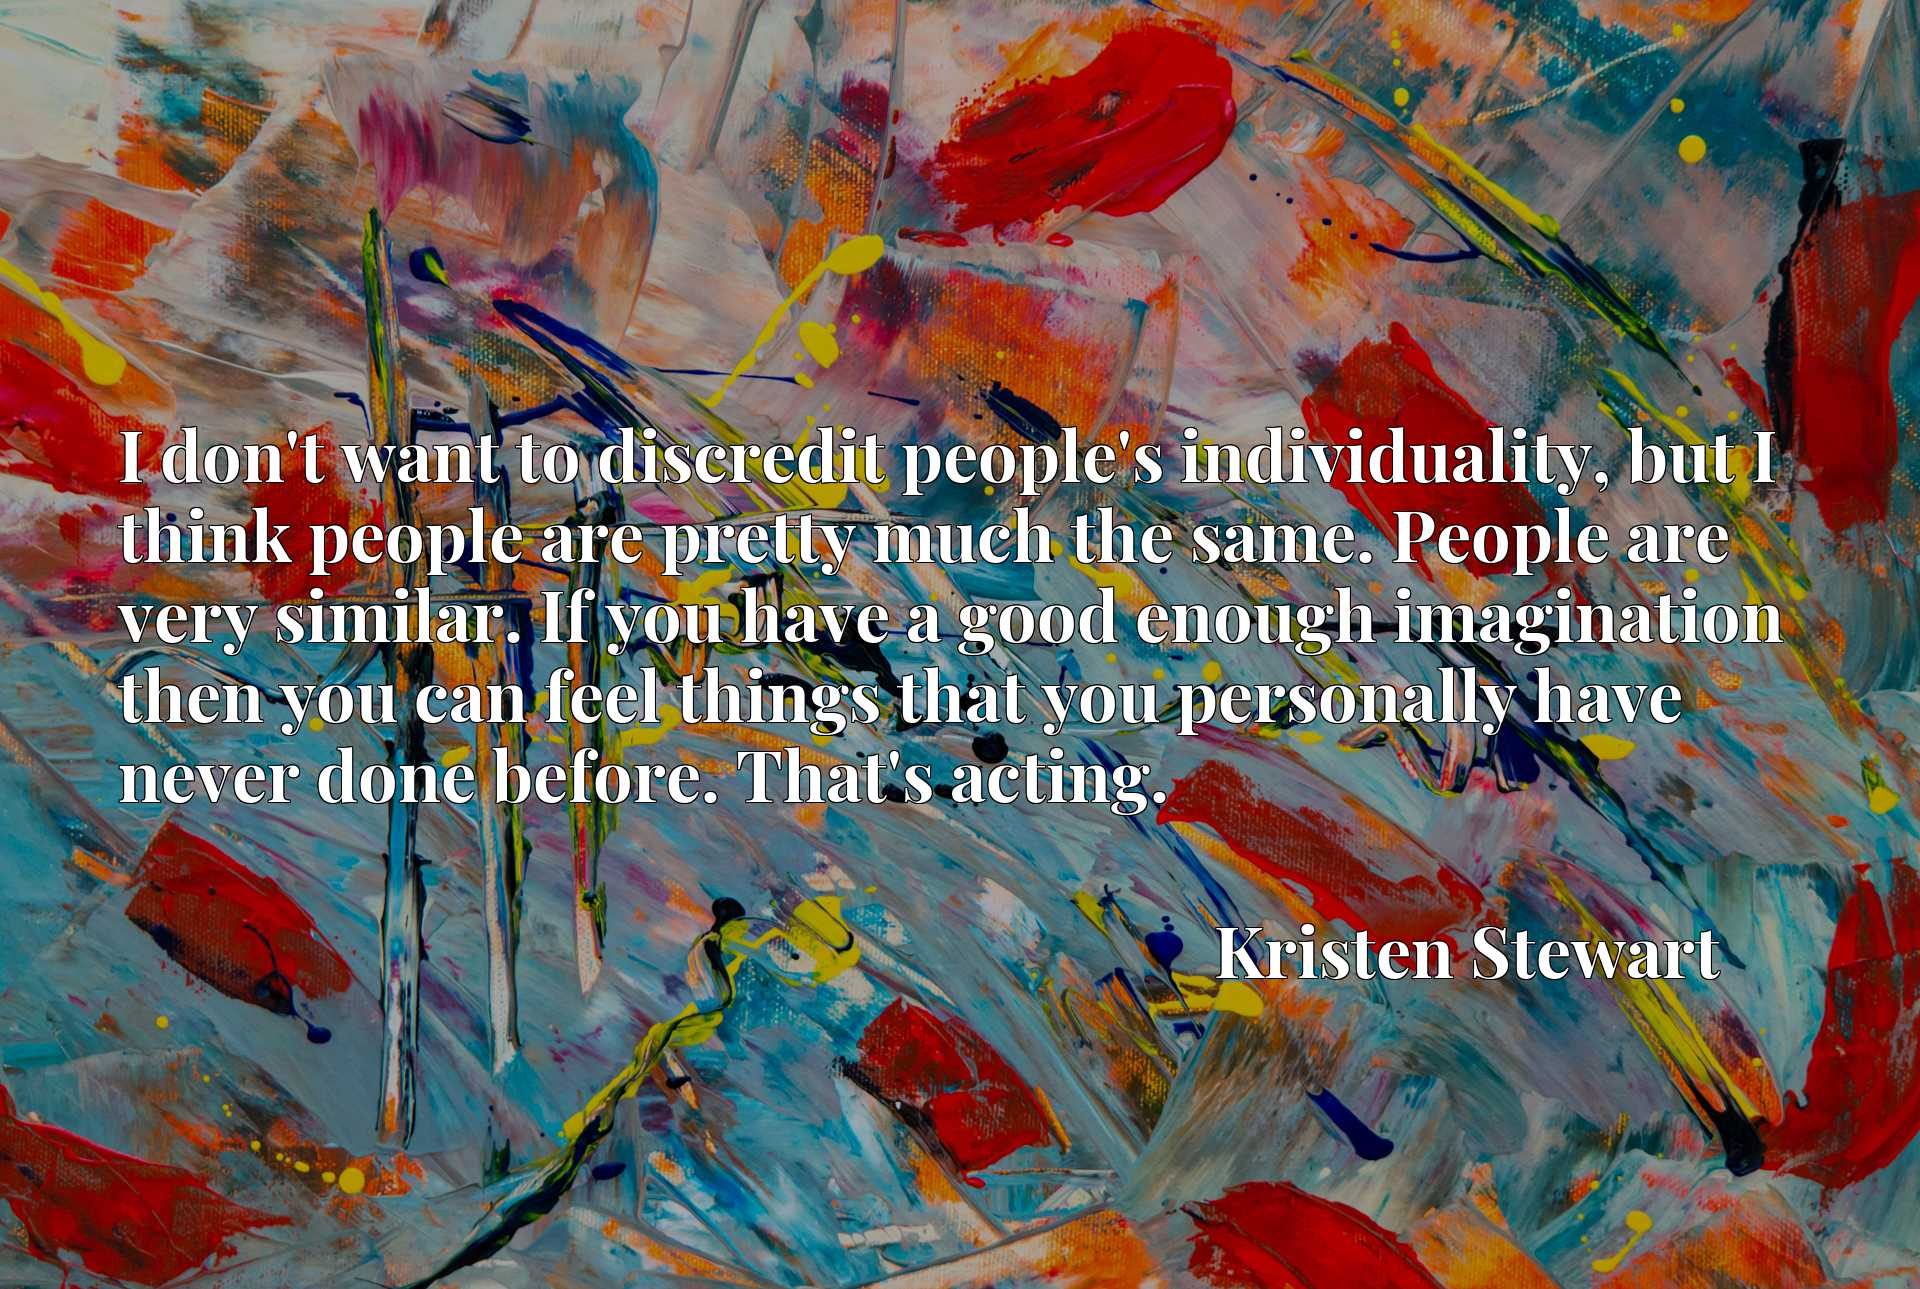 Quote Picture :I don't want to discredit people's individuality, but I think people are pretty much the same. People are very similar. If you have a good enough imagination then you can feel things that you personally have never done before. That's acting.